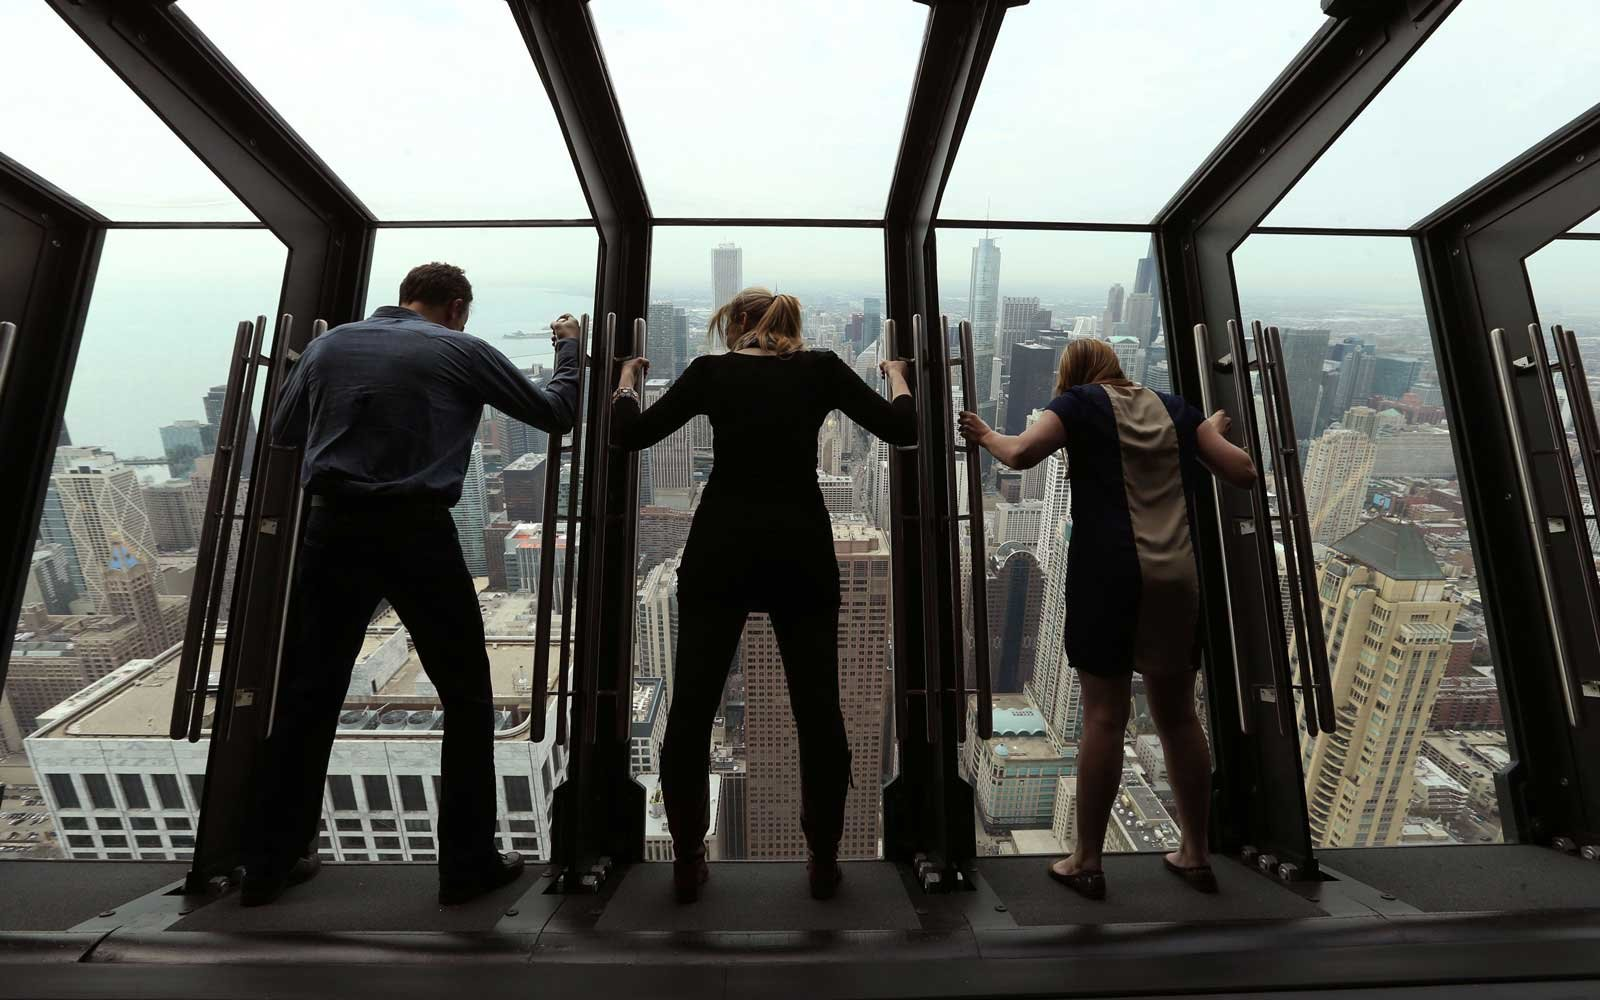 These Are the World's Most Jaw-dropping Skyscraper Observation Decks